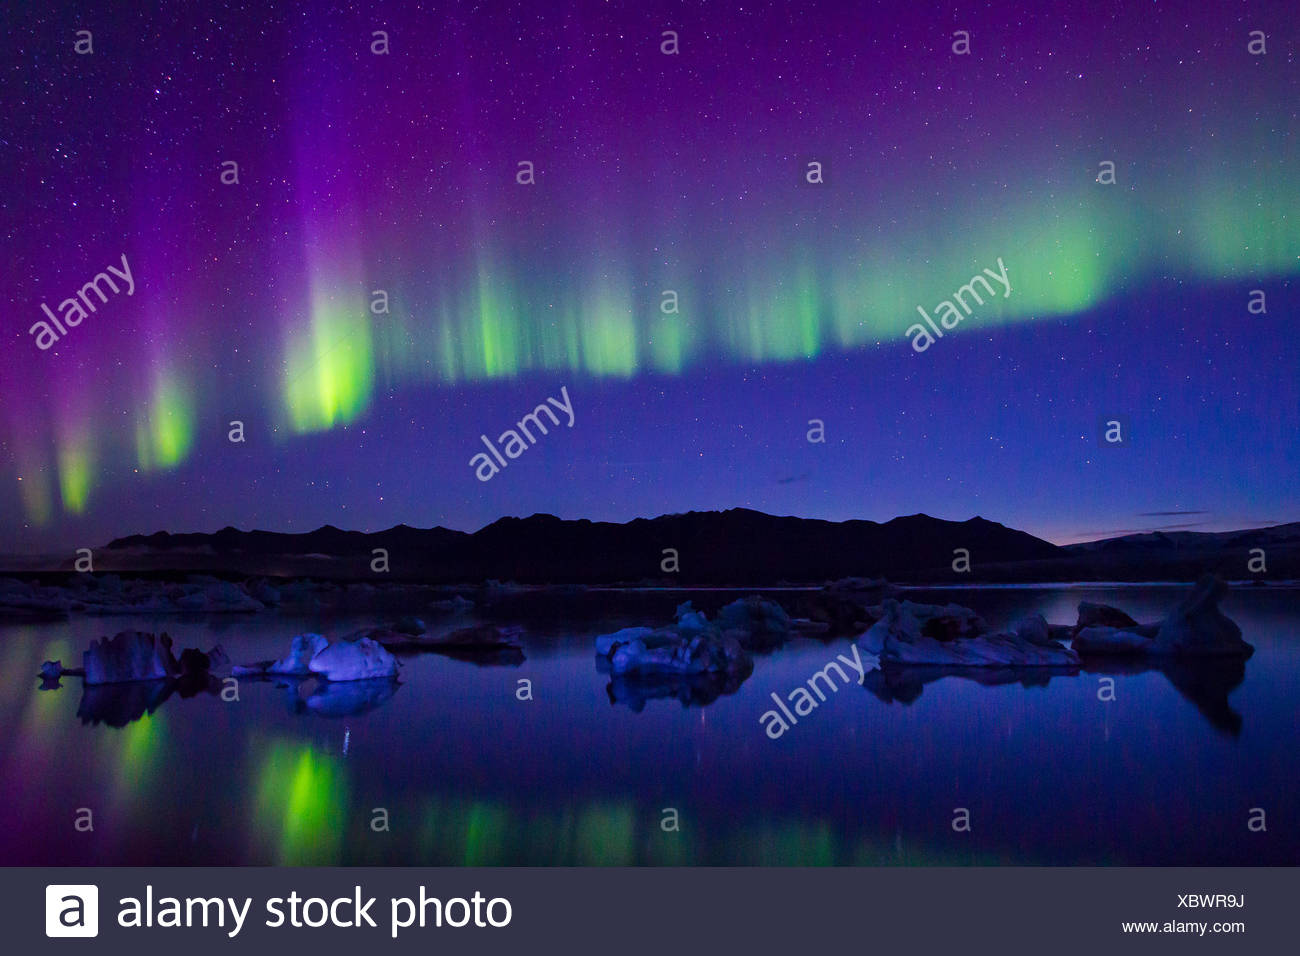 Northern Lights during a geomagnetic solar storm so intense that they reflected off freezing water. - Stock Image